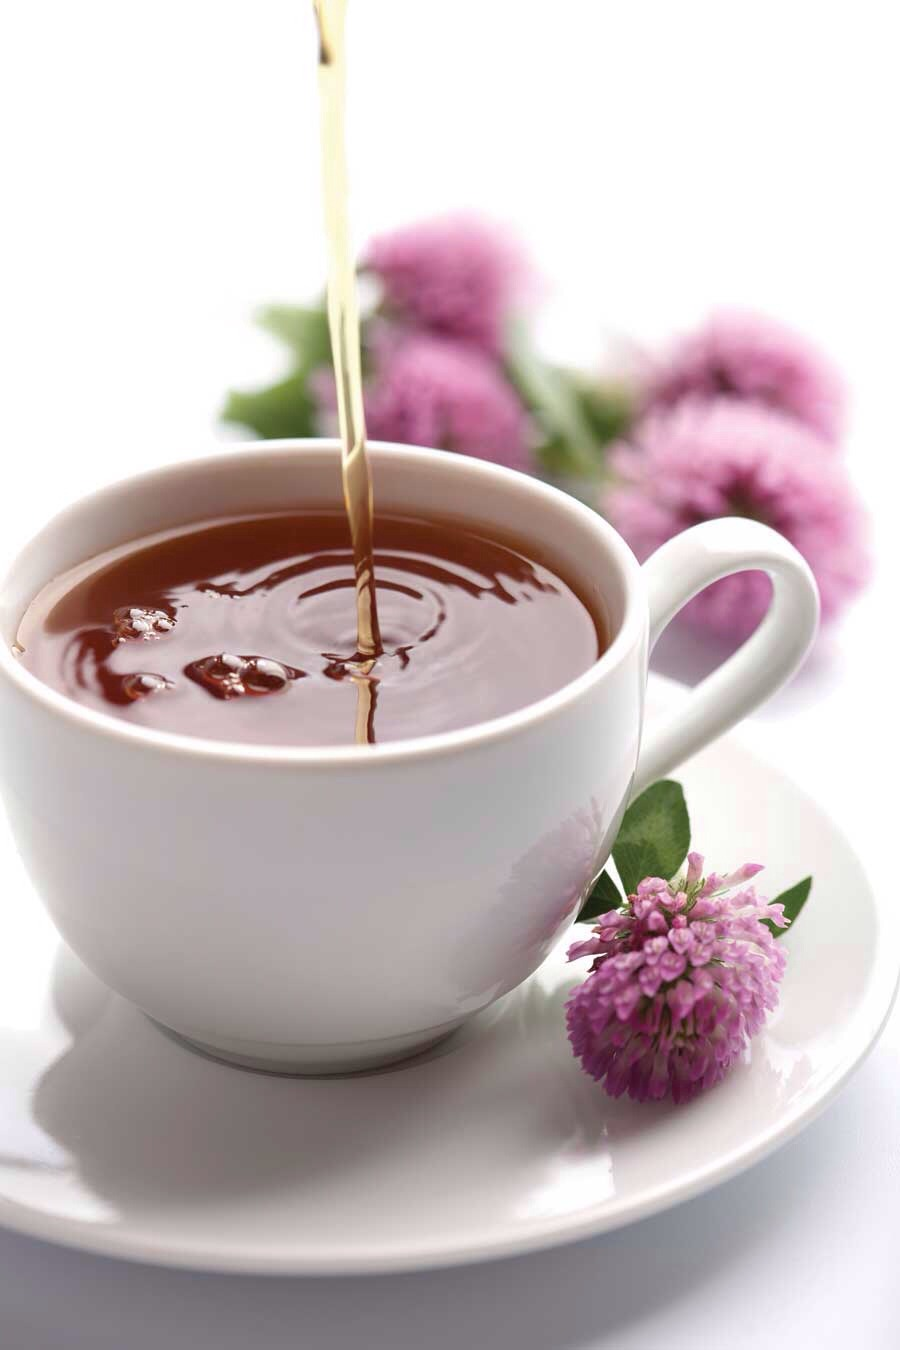 Herbal Tea: this helps the body relax and it's a detox for the skin. Also this is a slimming tea and can tighten skin. This is also amazing to drink because it taste amazing.